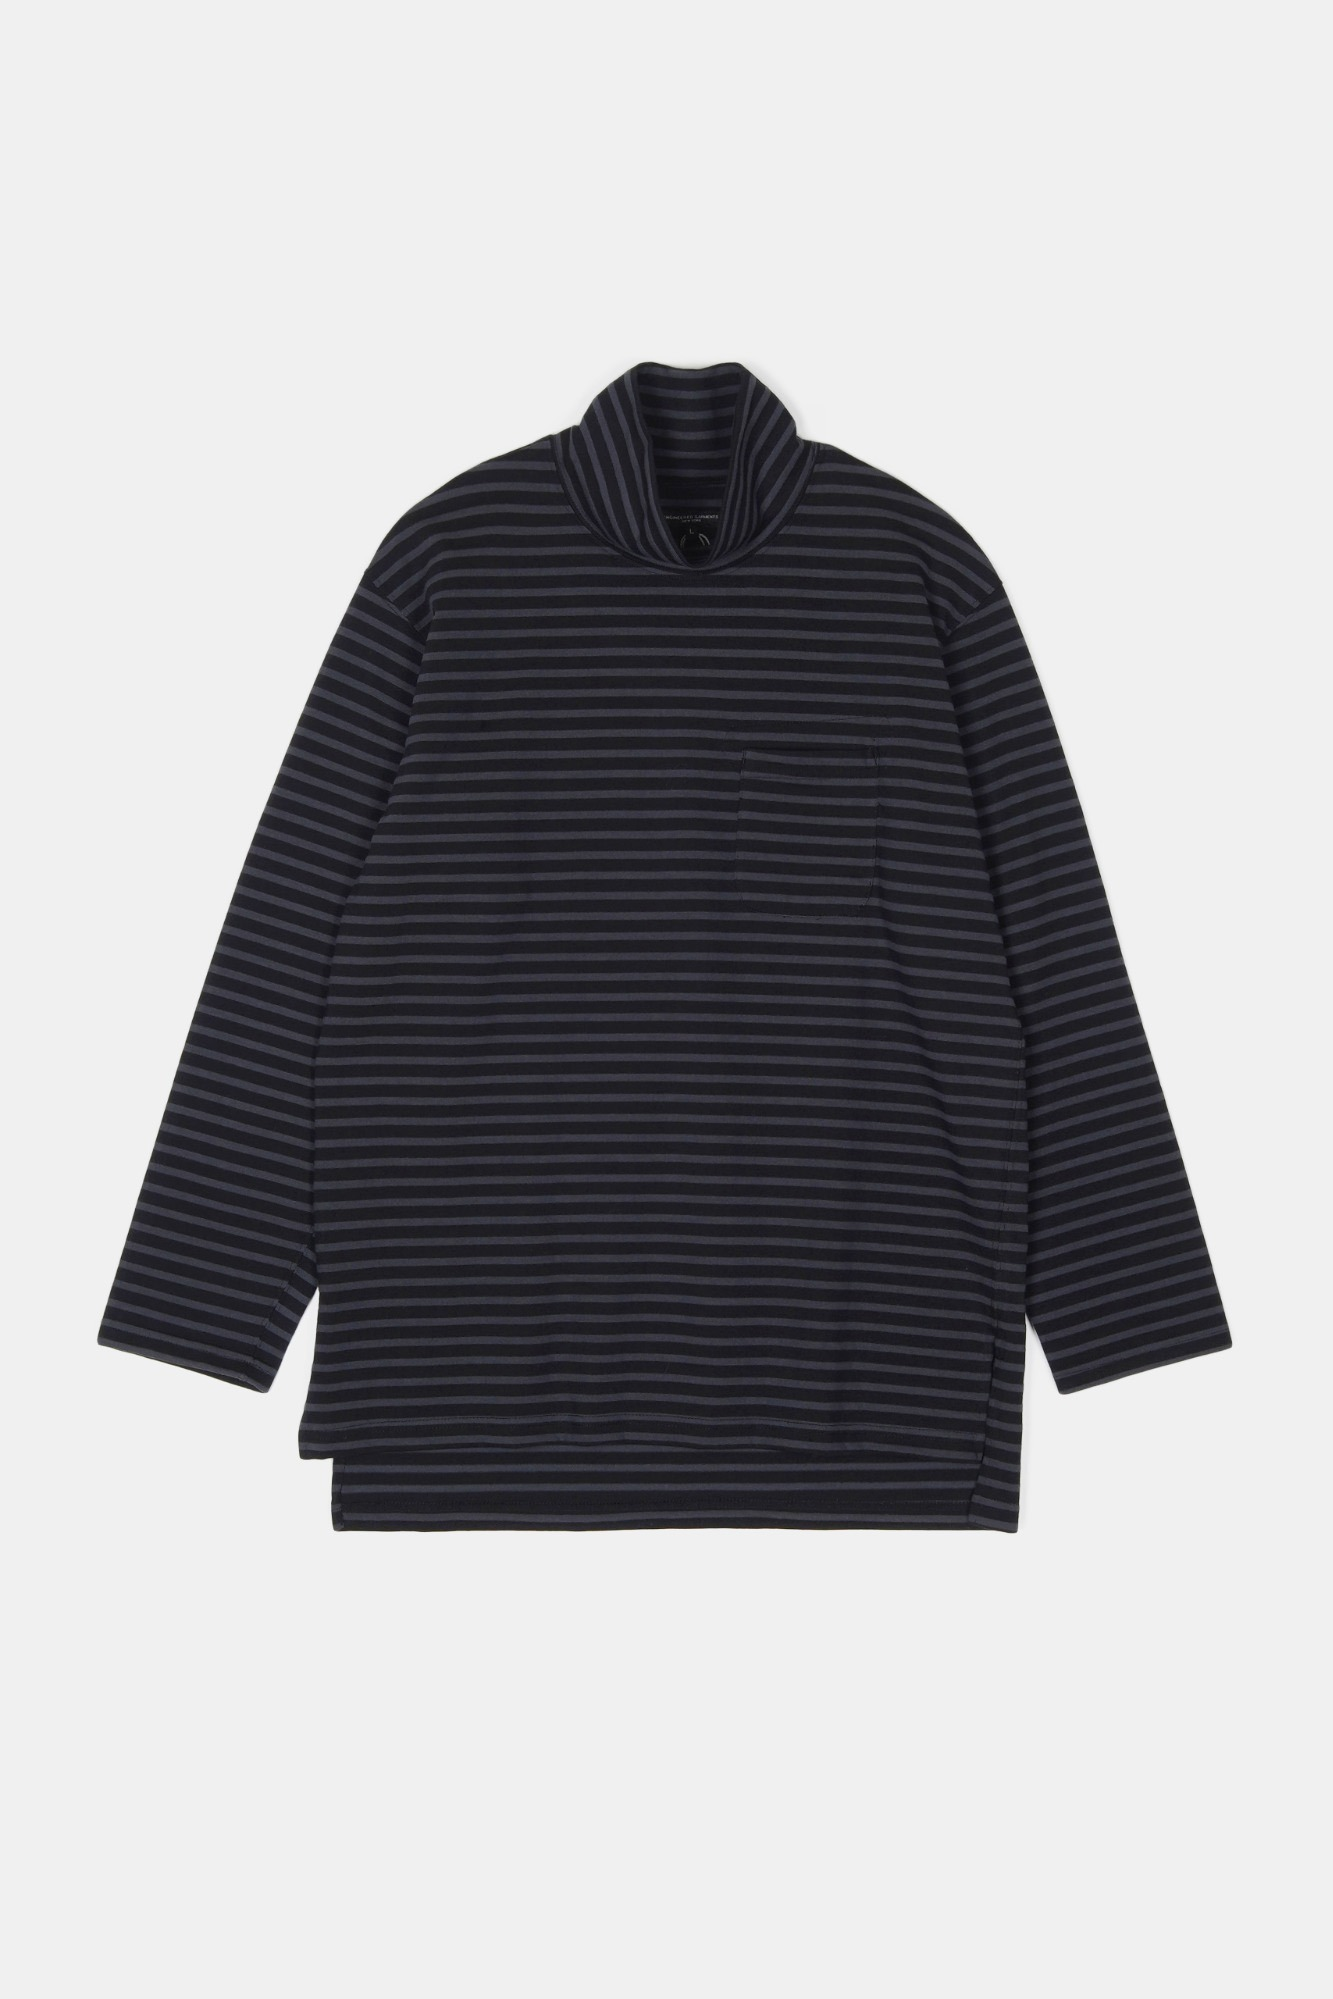 "ENGINEERED GARMENTS Mock Turtle ""Charcoal/Black PC Stripe Jersey"""